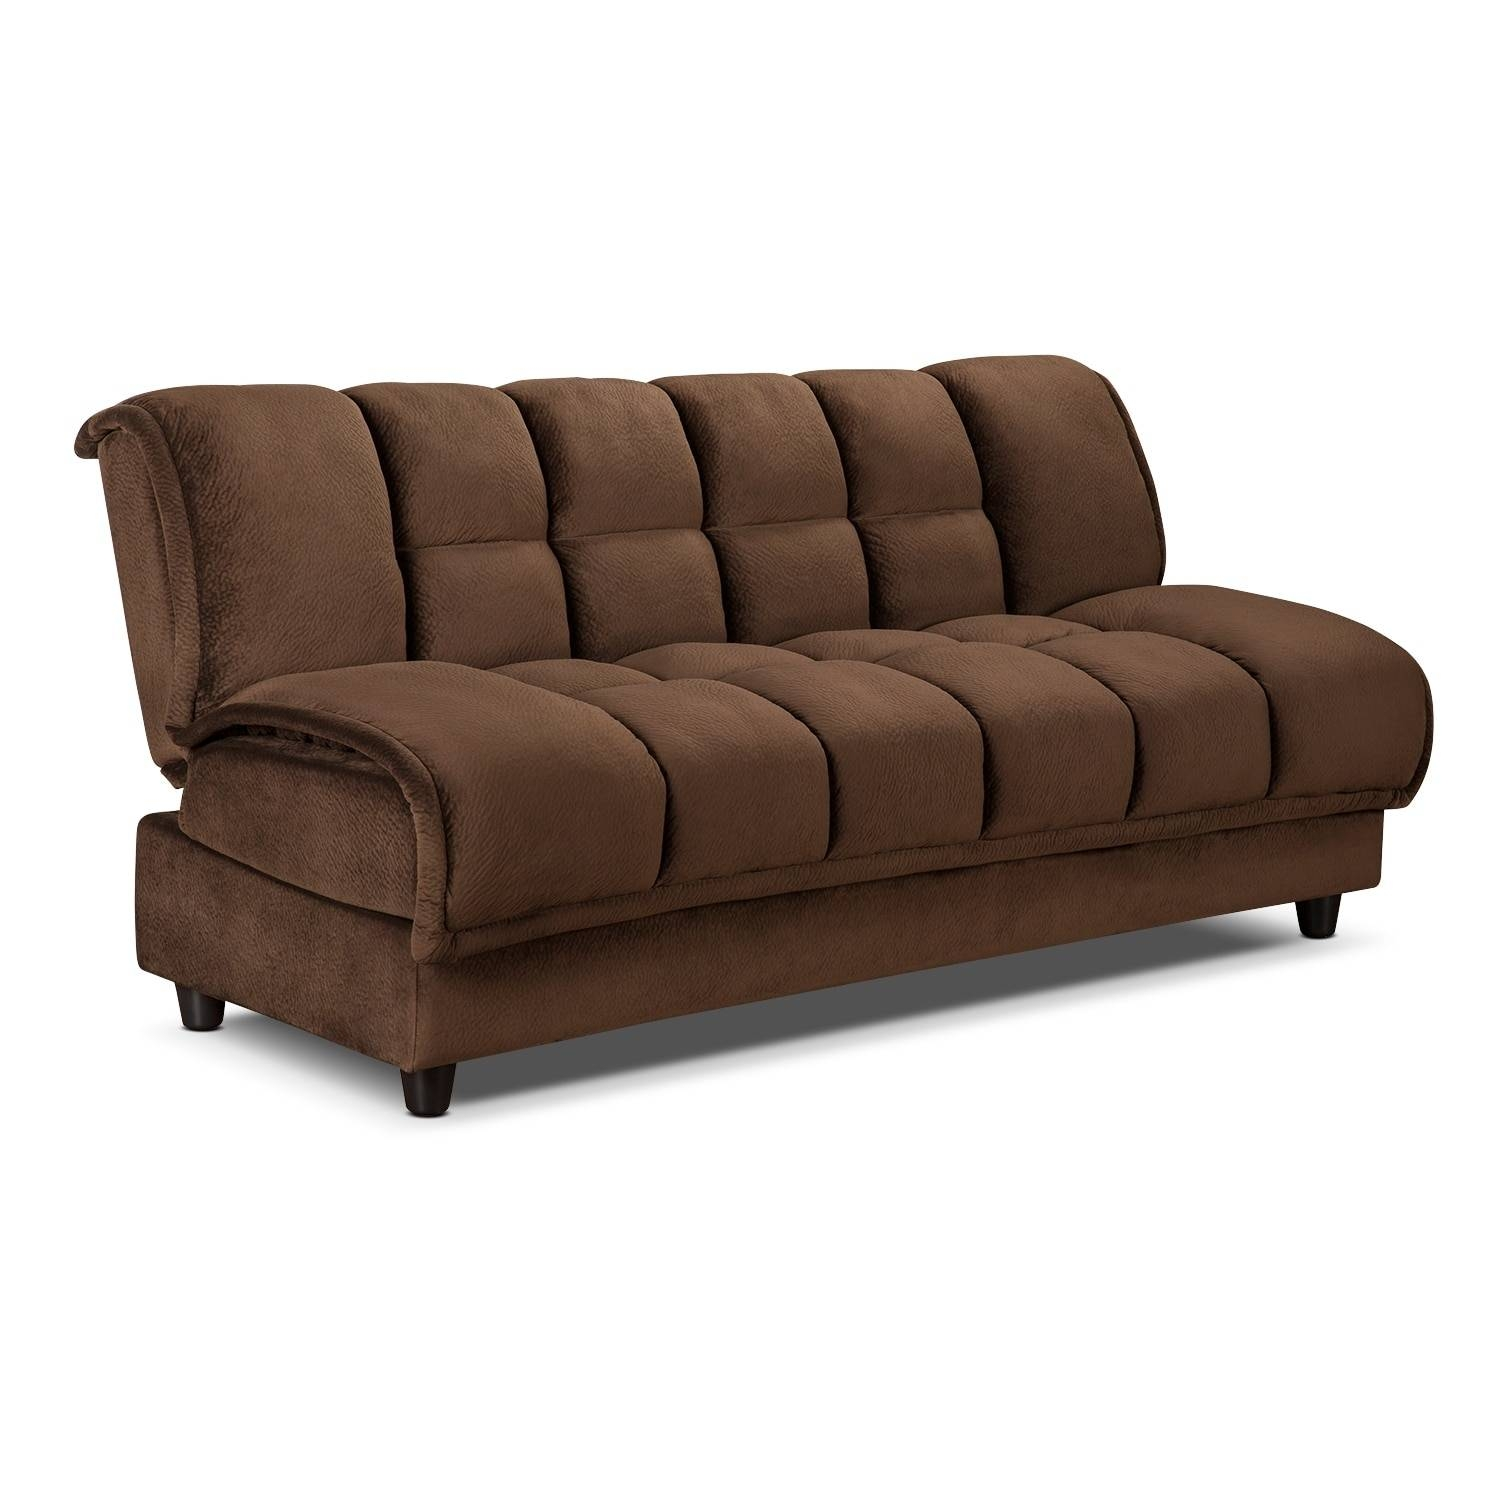 Sleeper Sofas | Value City Furniture | Value City Furniture inside Sofa Bed Sleepers (Image 16 of 30)